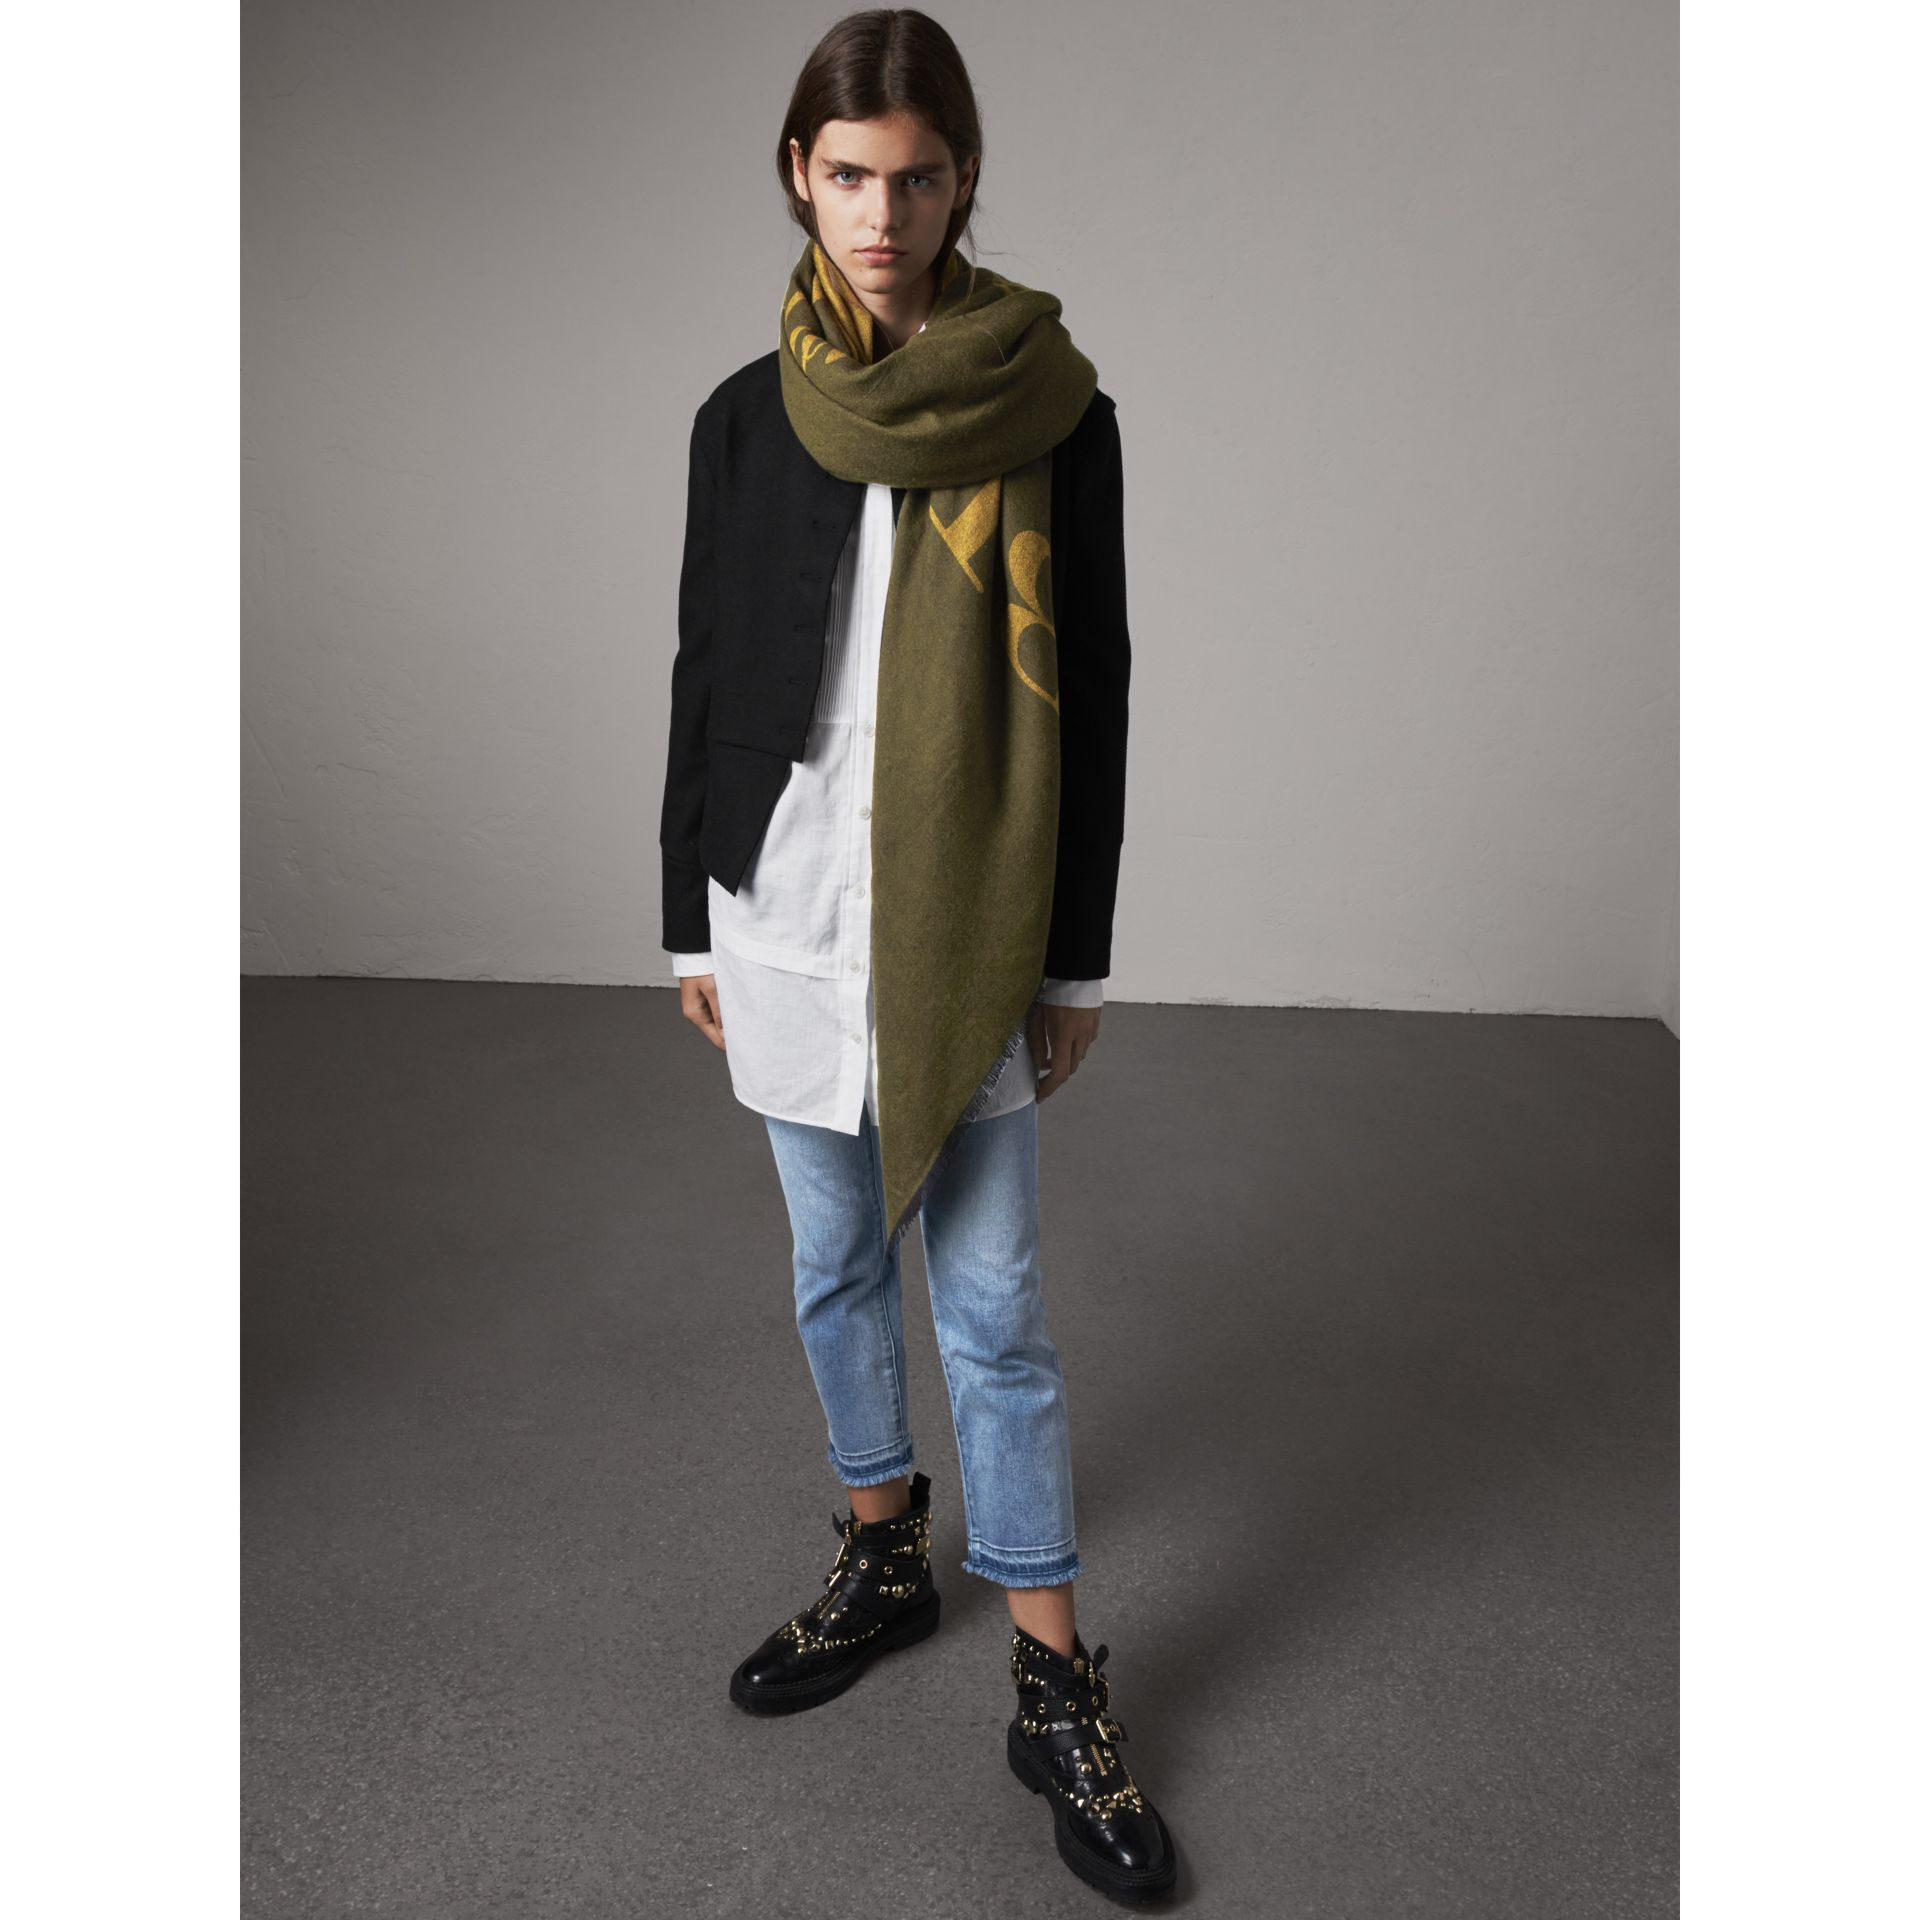 Graphic Print Motif Cashmere Wrap in Olive - Women | Burberry - gallery image 3